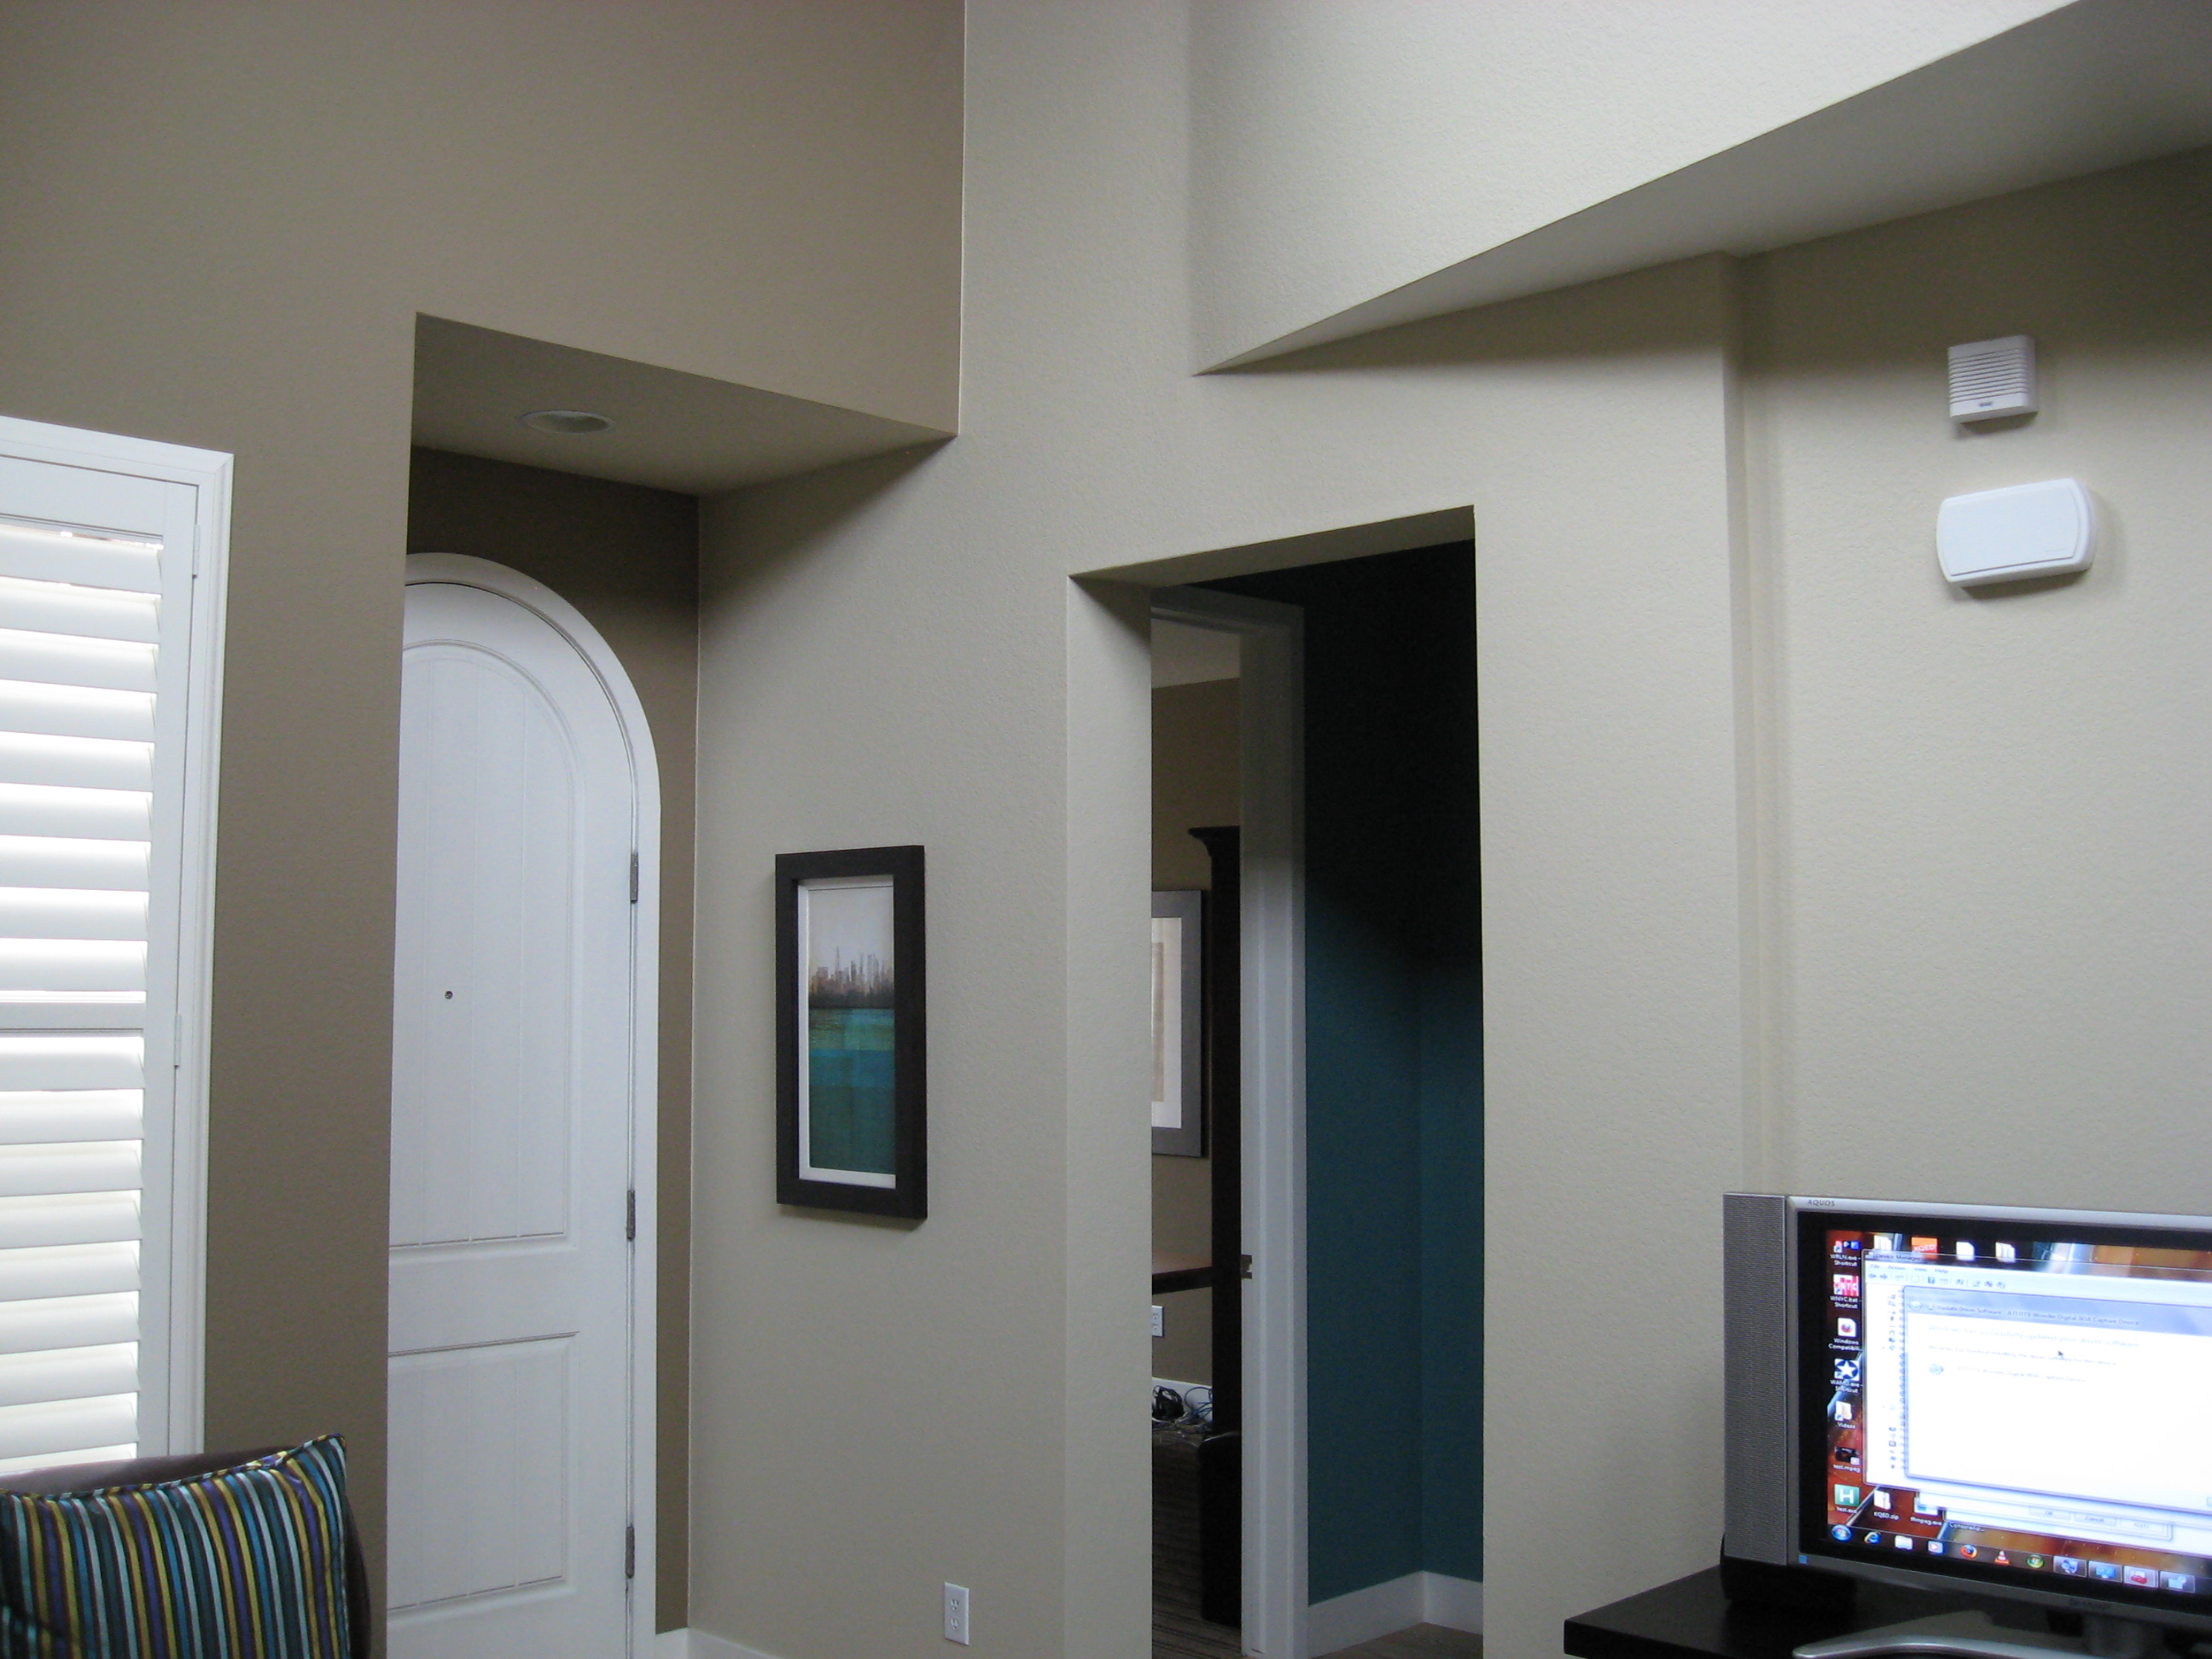 Best denver interior painters painting walls ceilings trim for What is best paint for interior walls